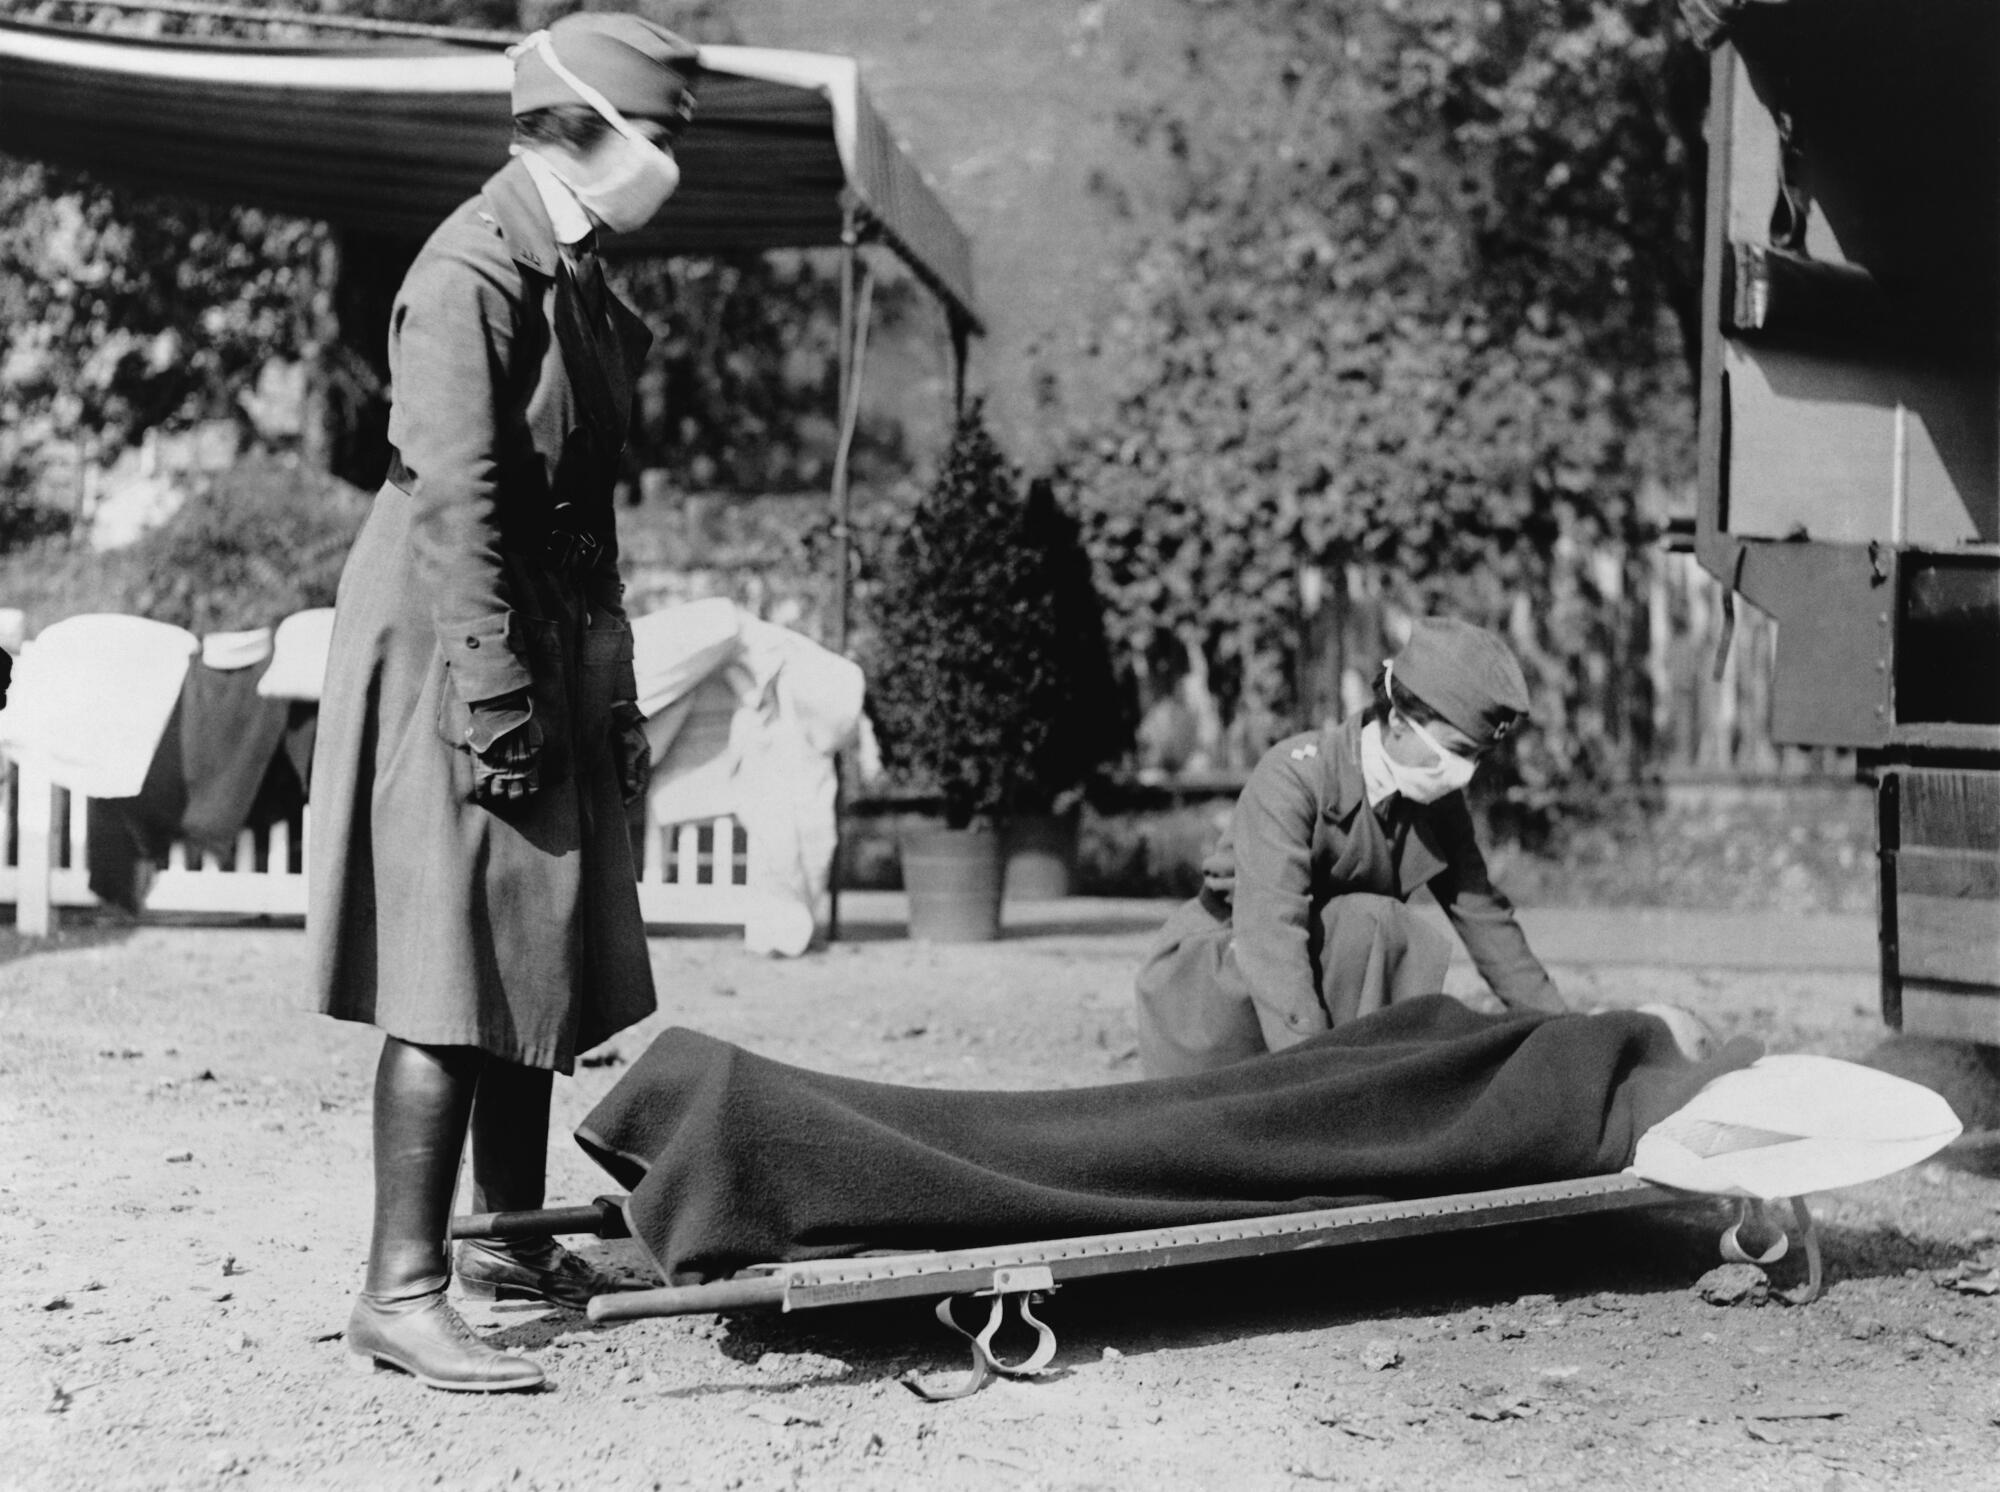 Demonstration at the Red Cross Emergency Ambulance Station in Washington, DC during the influenza pandemic of 1918.